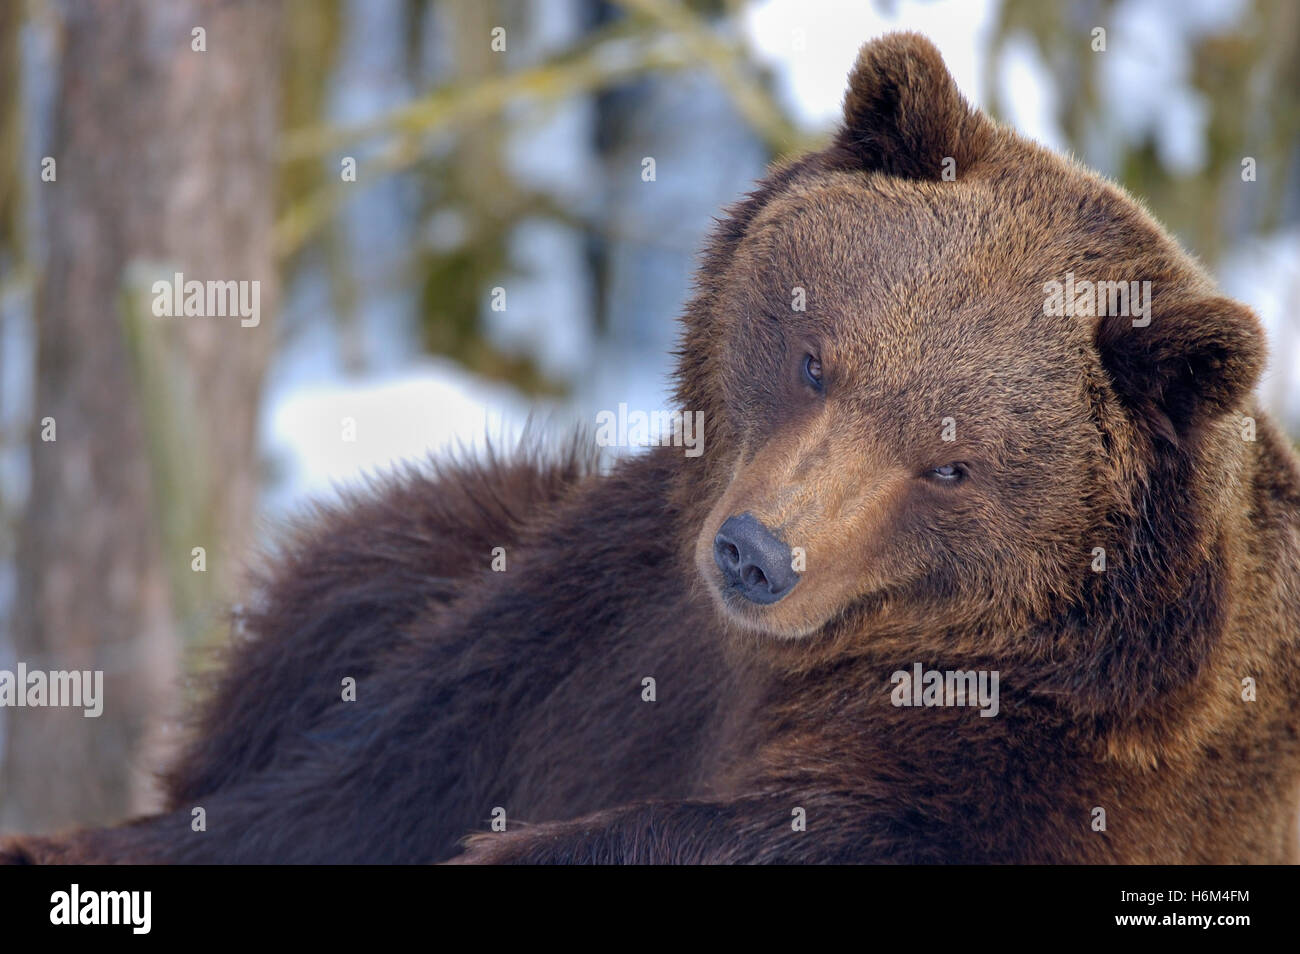 brown bear - Stock Image